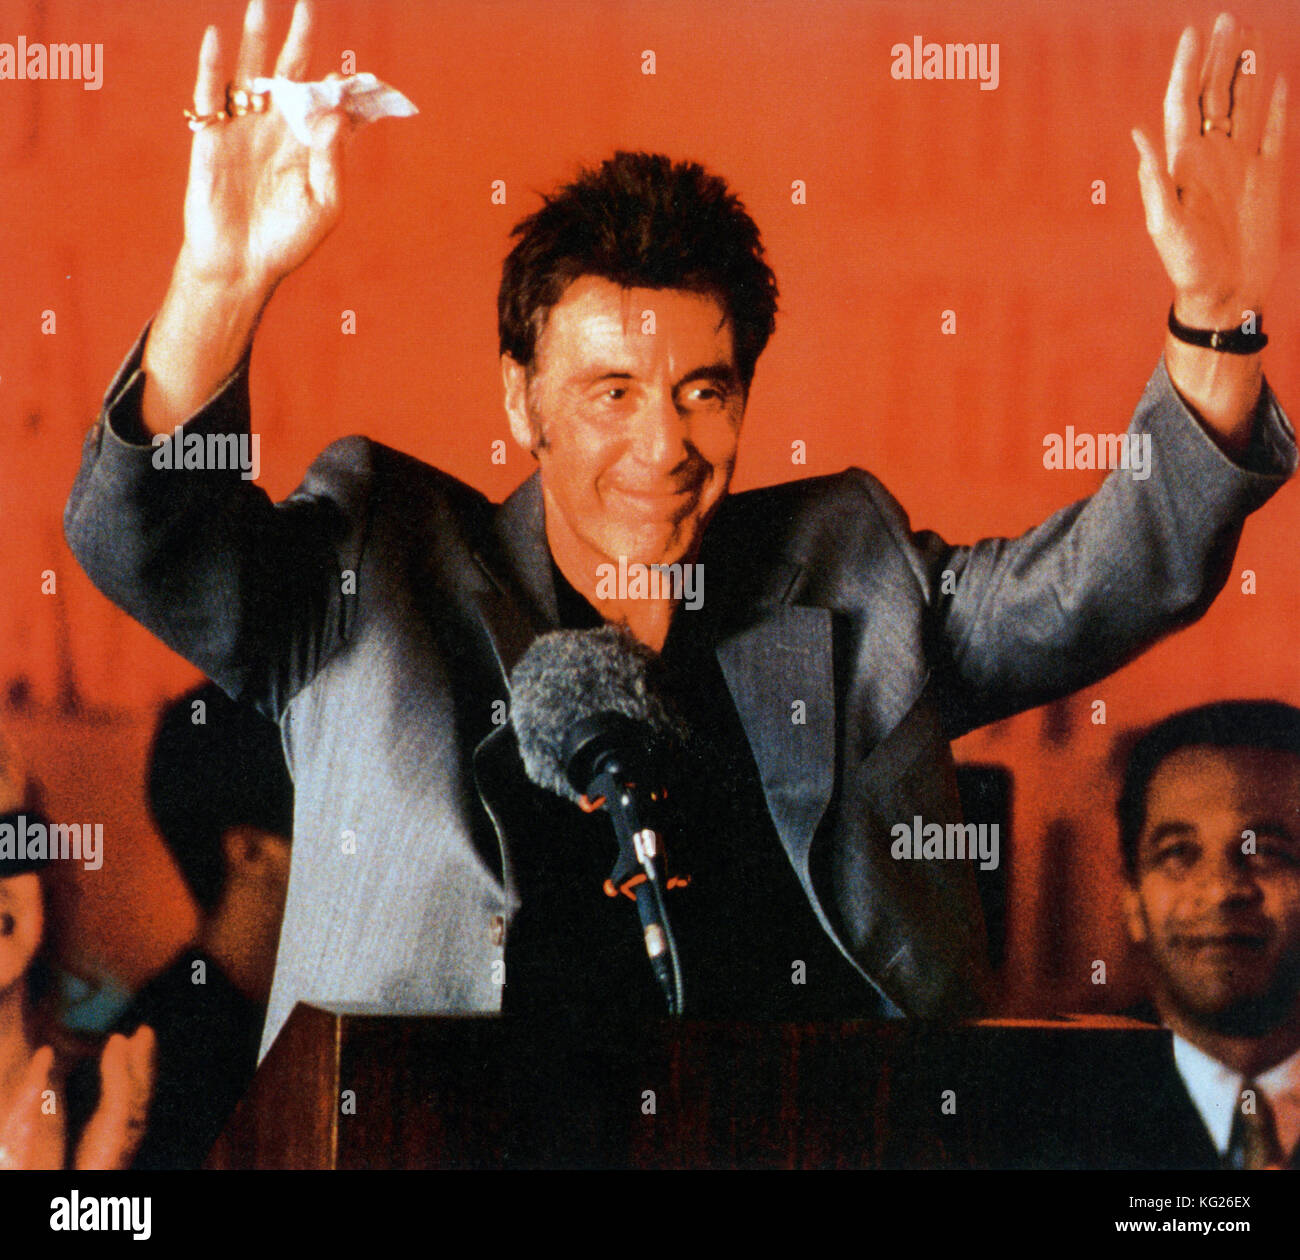 ANY GIVEN SUNDAY 1999 Warner Bros film with Al Pacino - Stock Image